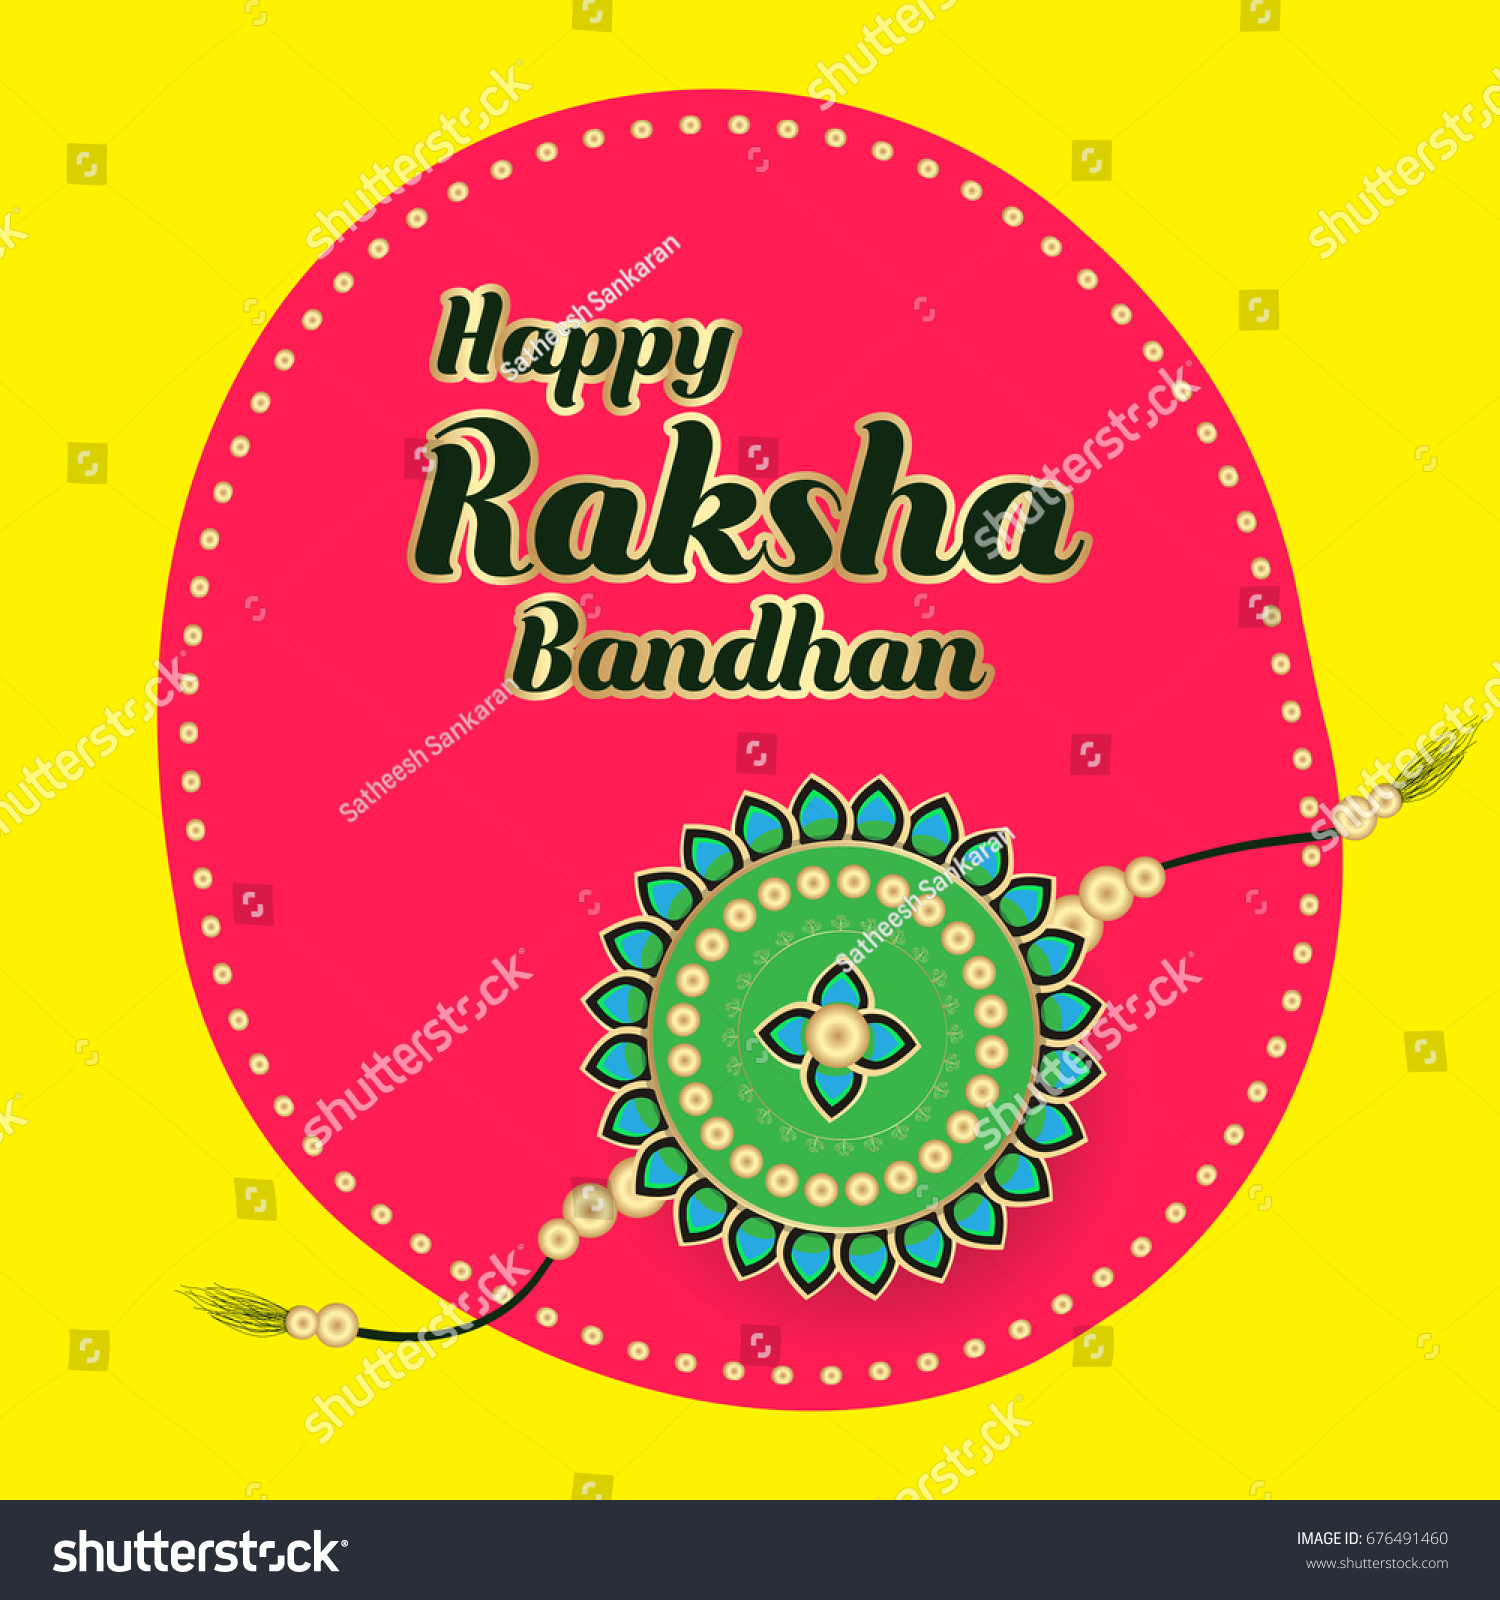 Creative raksha bandhan greetings vector illustration stock vector creative raksha bandhan greetings vector illustration for posters banners and print raksha bandhan is kristyandbryce Image collections